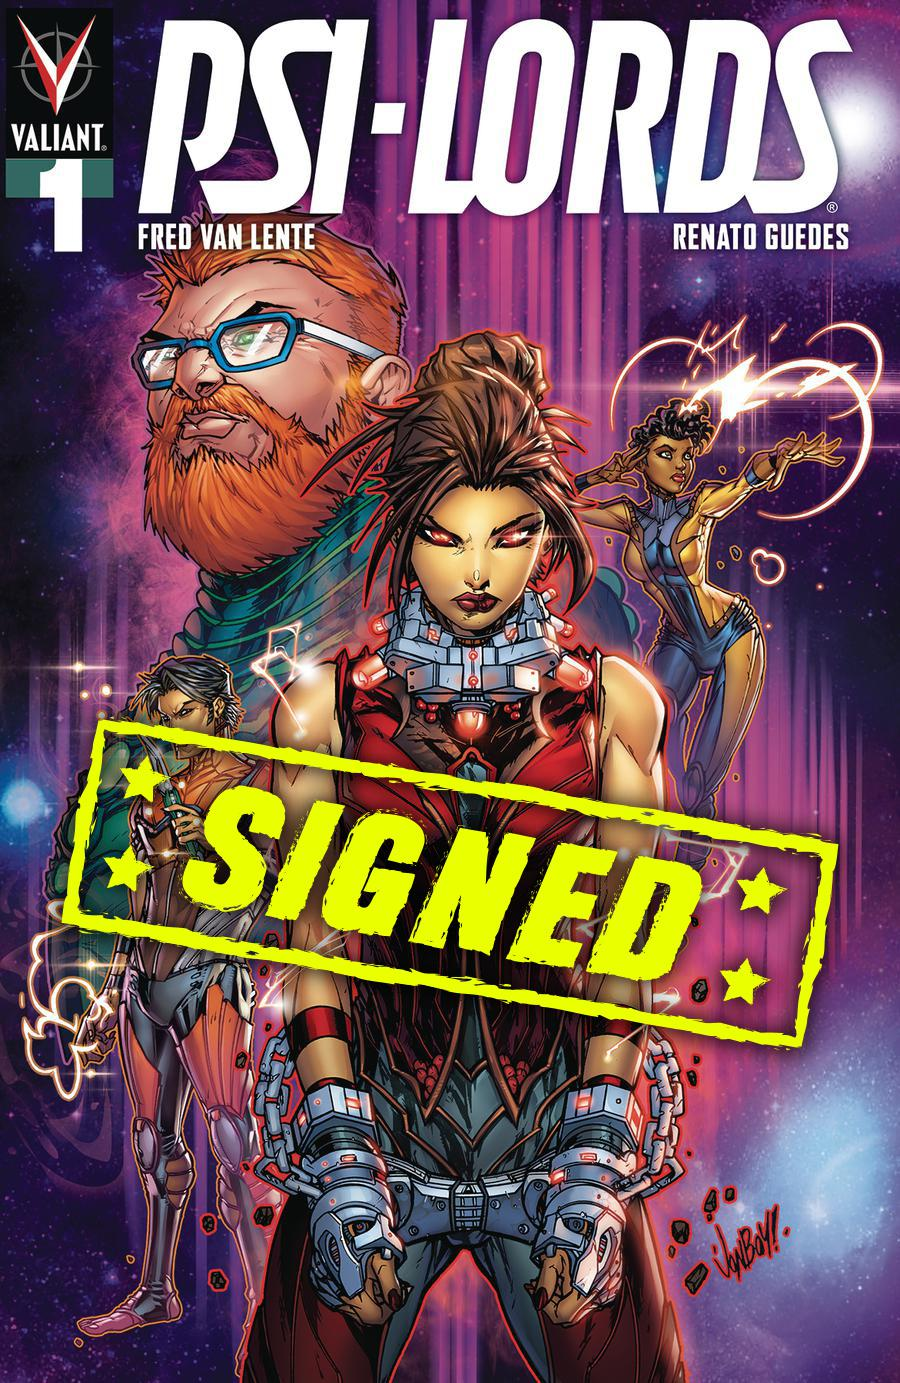 Psi-Lords Vol 2 #1 Cover H Variant Jonboy Meyers Cover Signed By Fred Van Lente